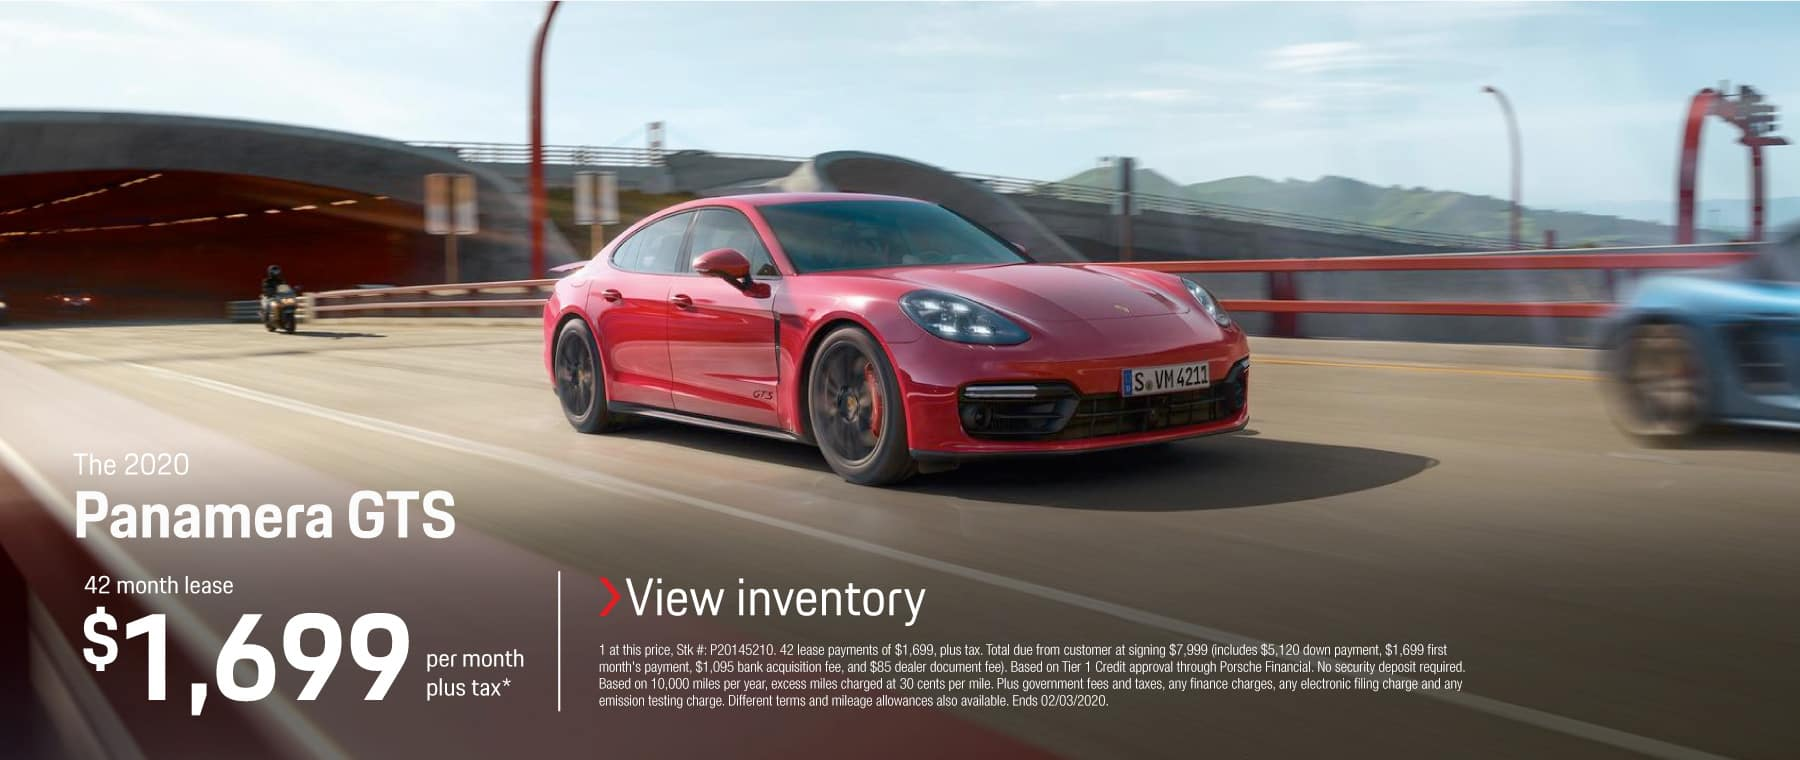 2020 PANAMERA GTS LEASE 1699 / 42 MONTHS